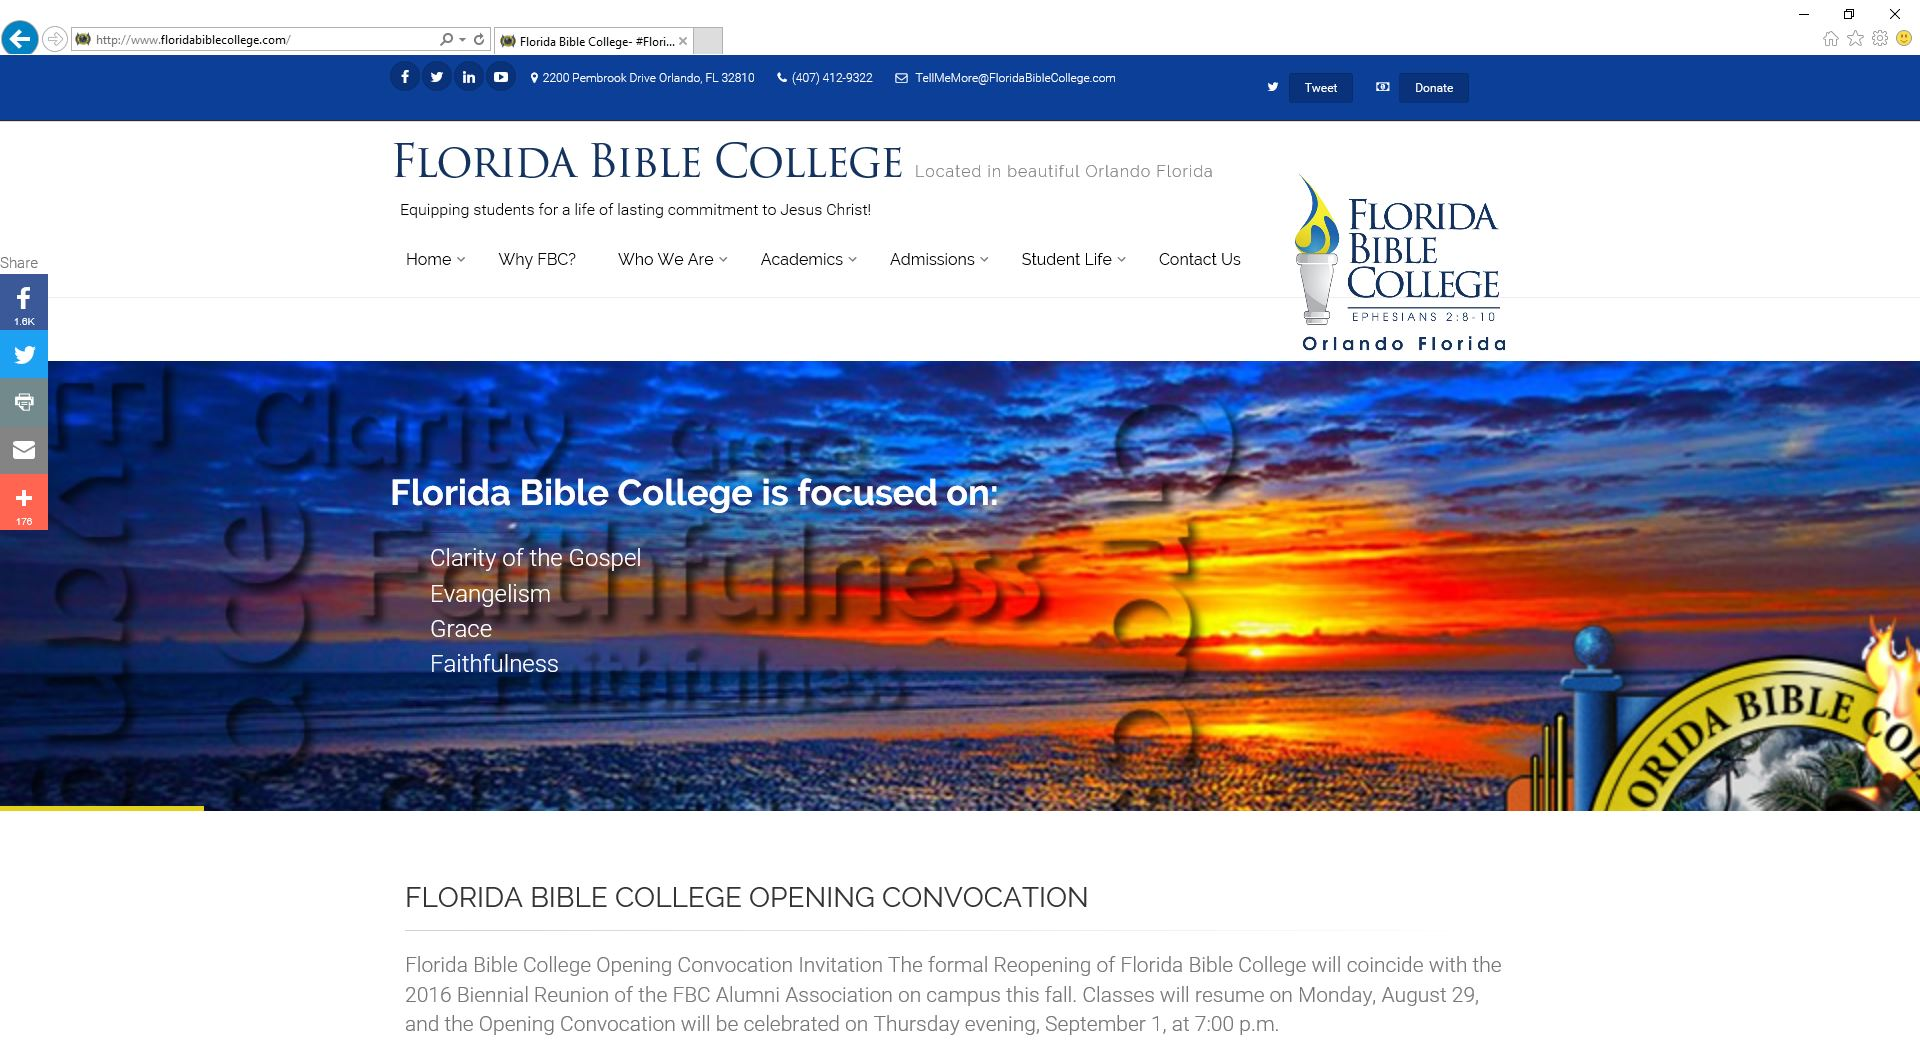 Florida Bible College Website a Your Ministry Site website production.